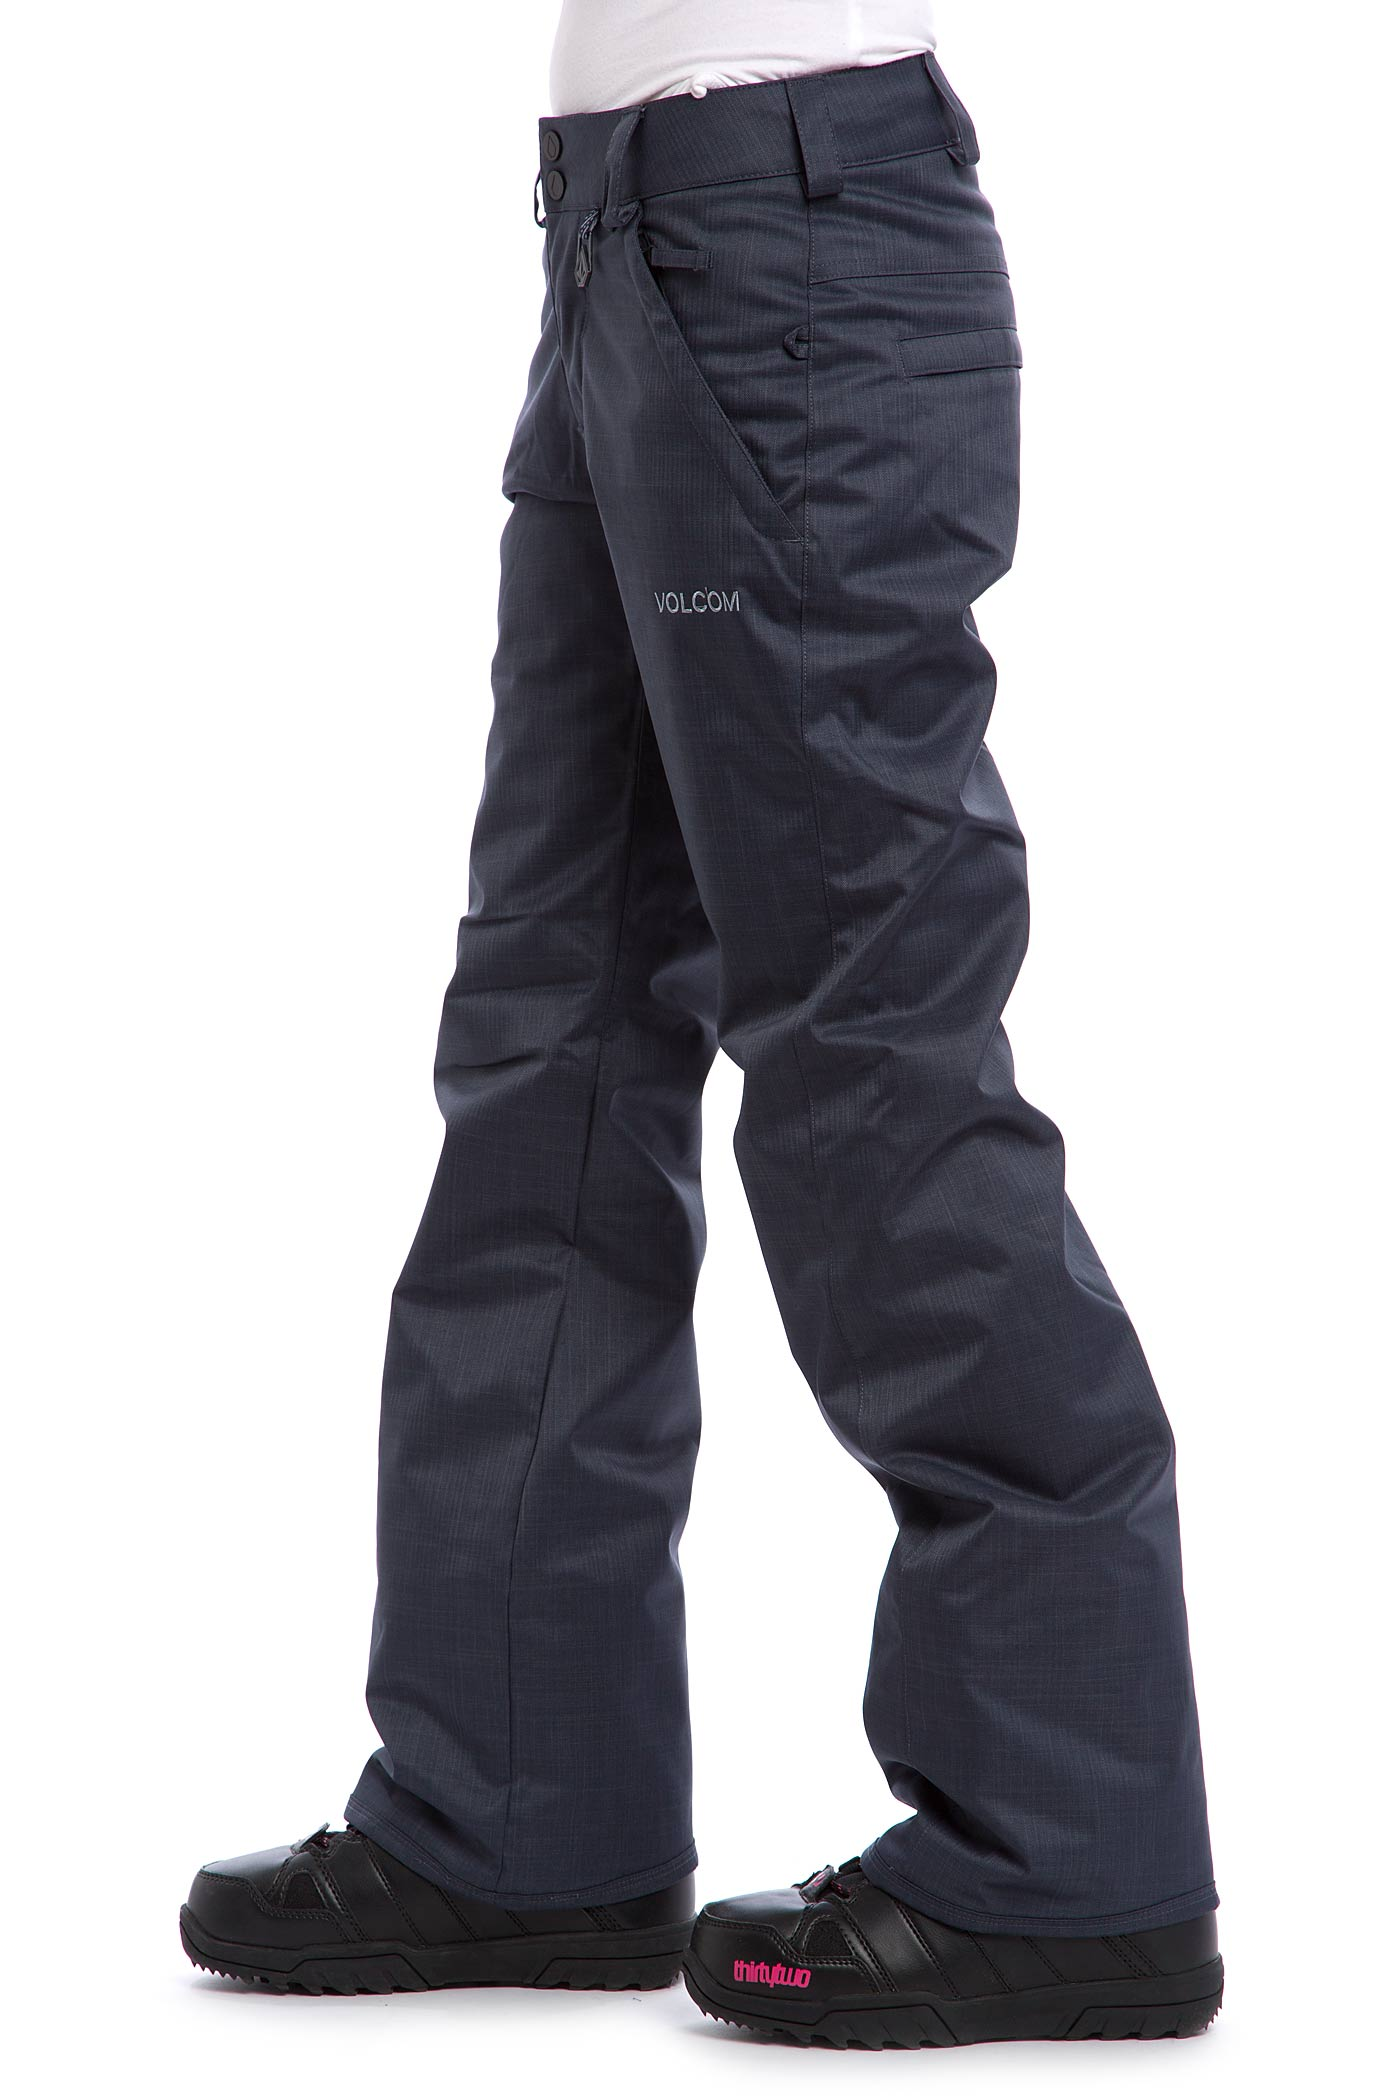 Volcom Frochickie Insulated Snowboard Pant Women Charcoal